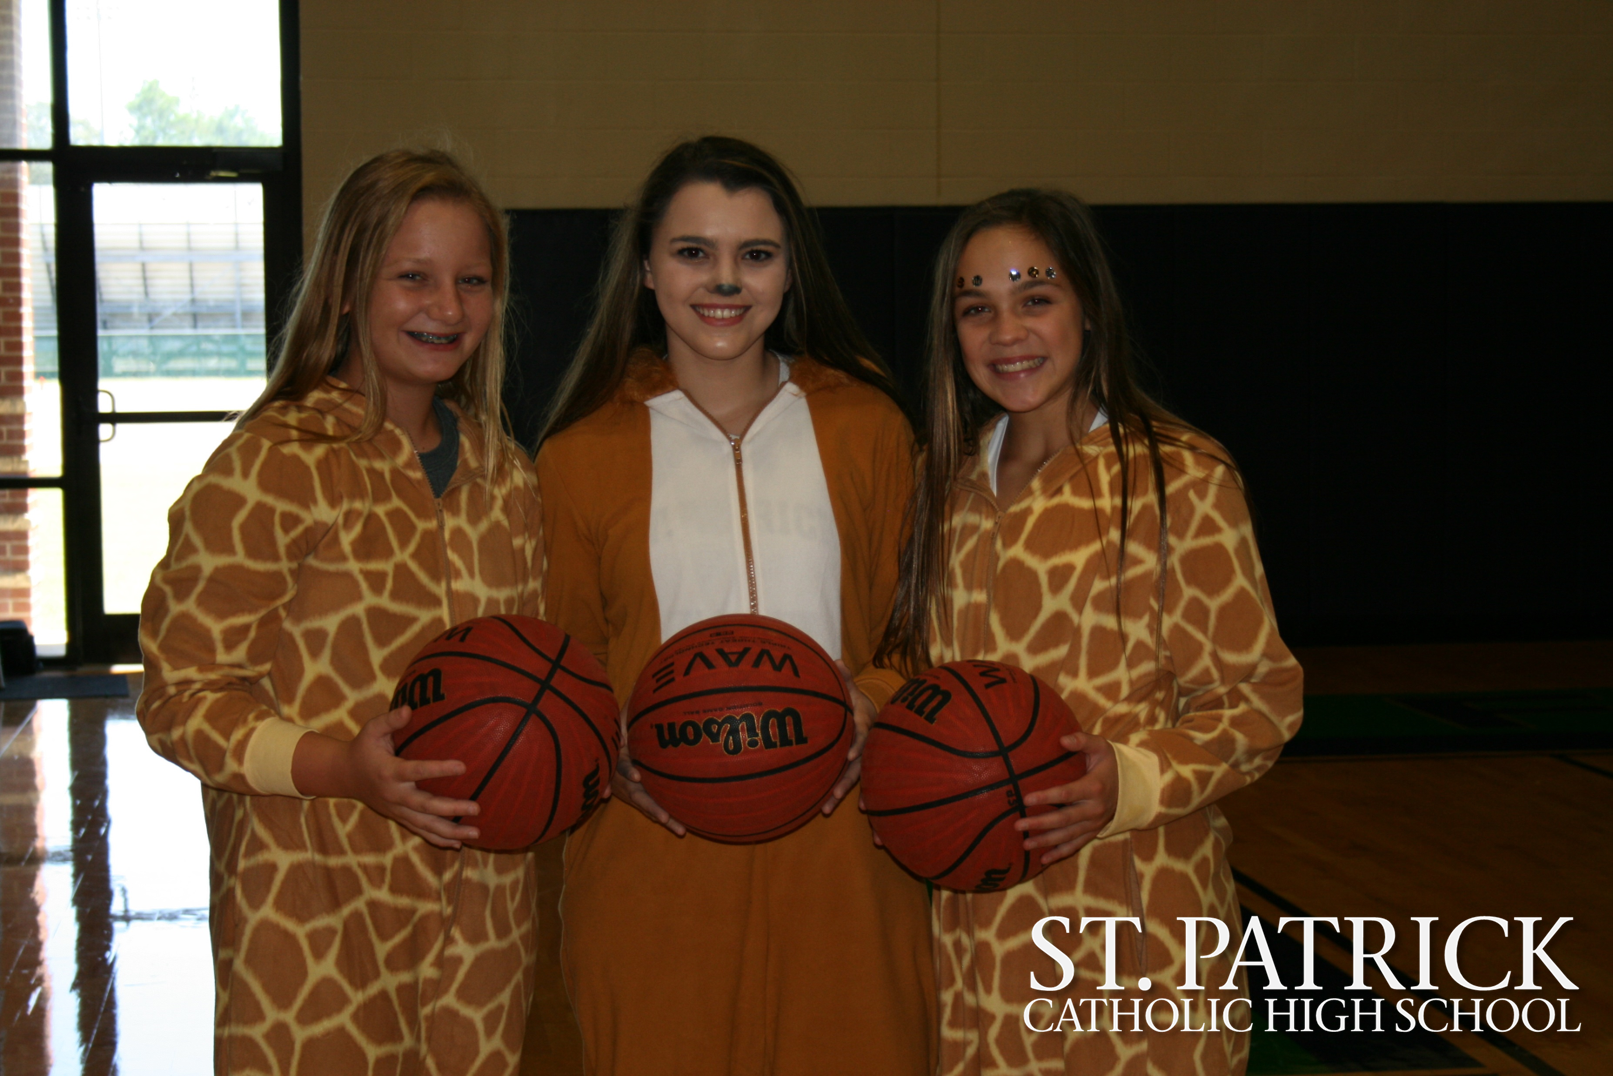 Girl's Basketball Shoot-a-thon